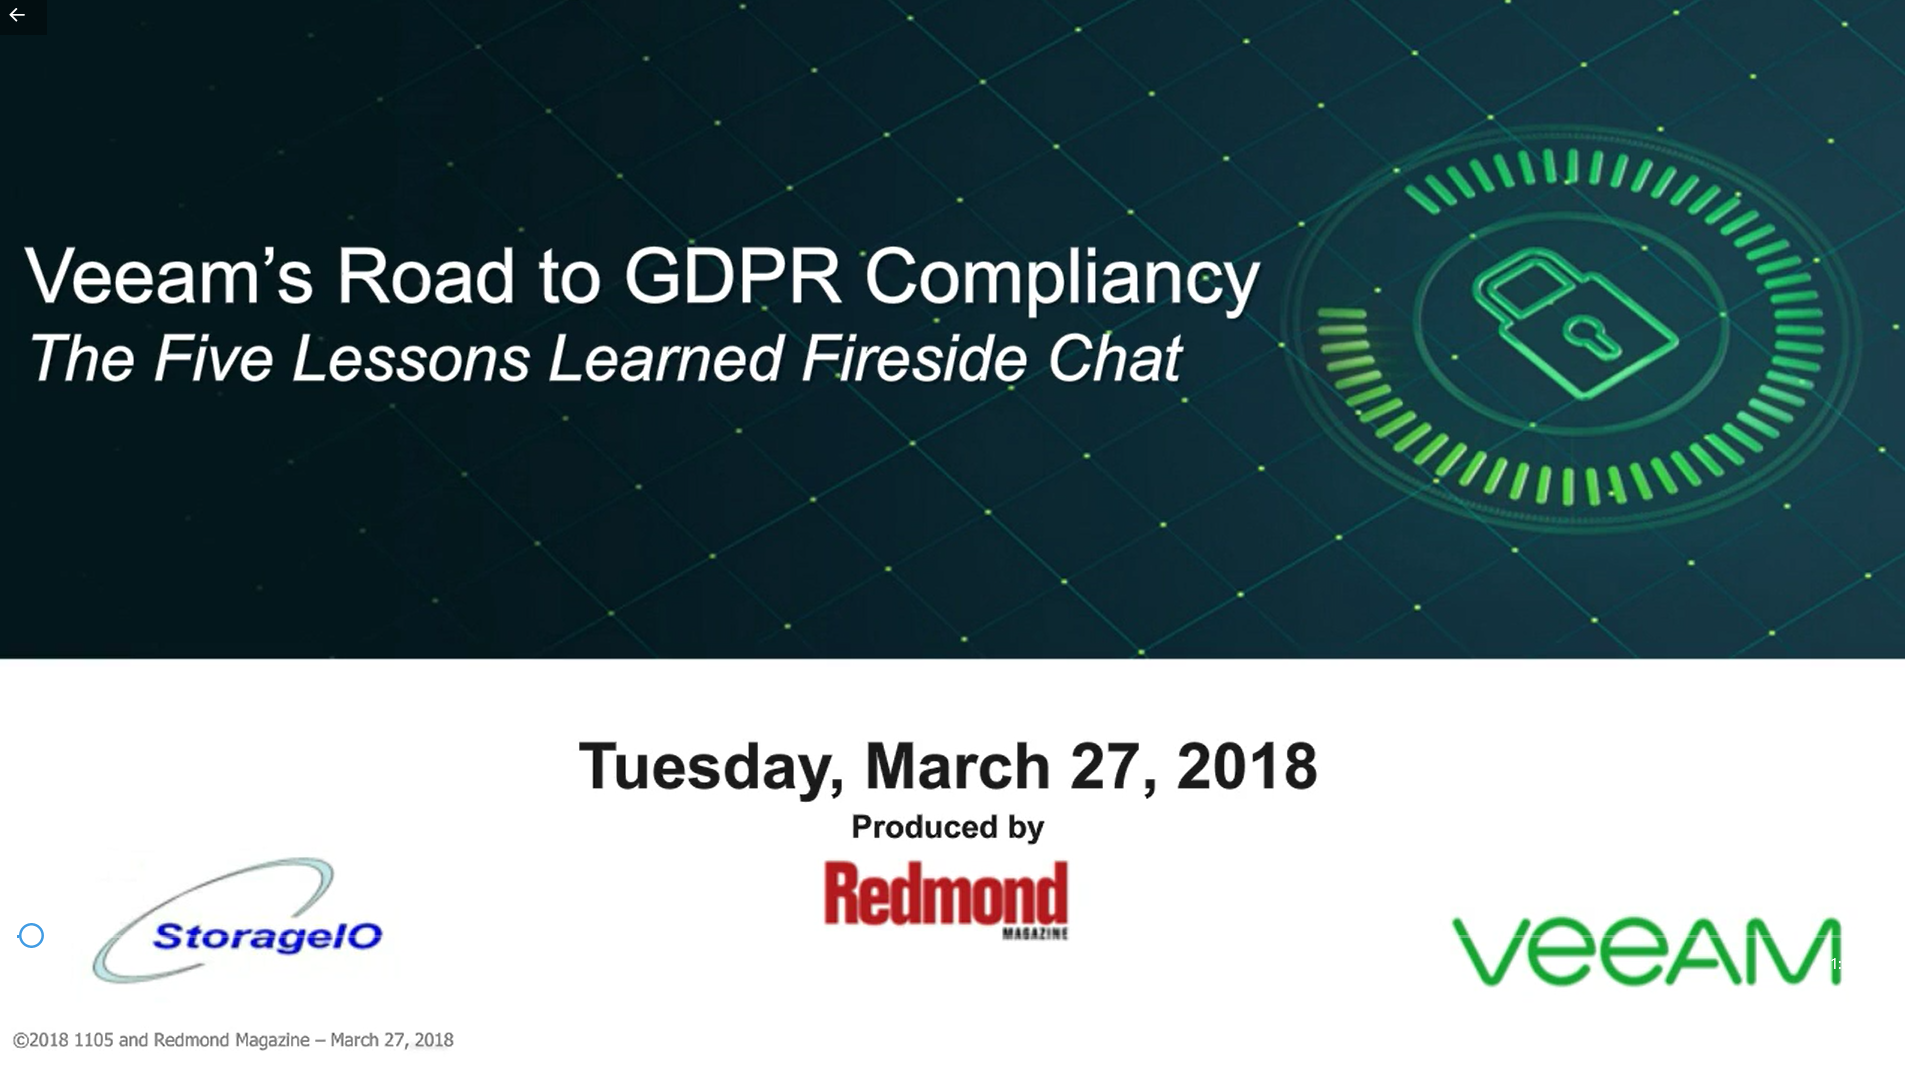 Veeam's Road to GDPR Compliancy – The 5 Lessons Learned